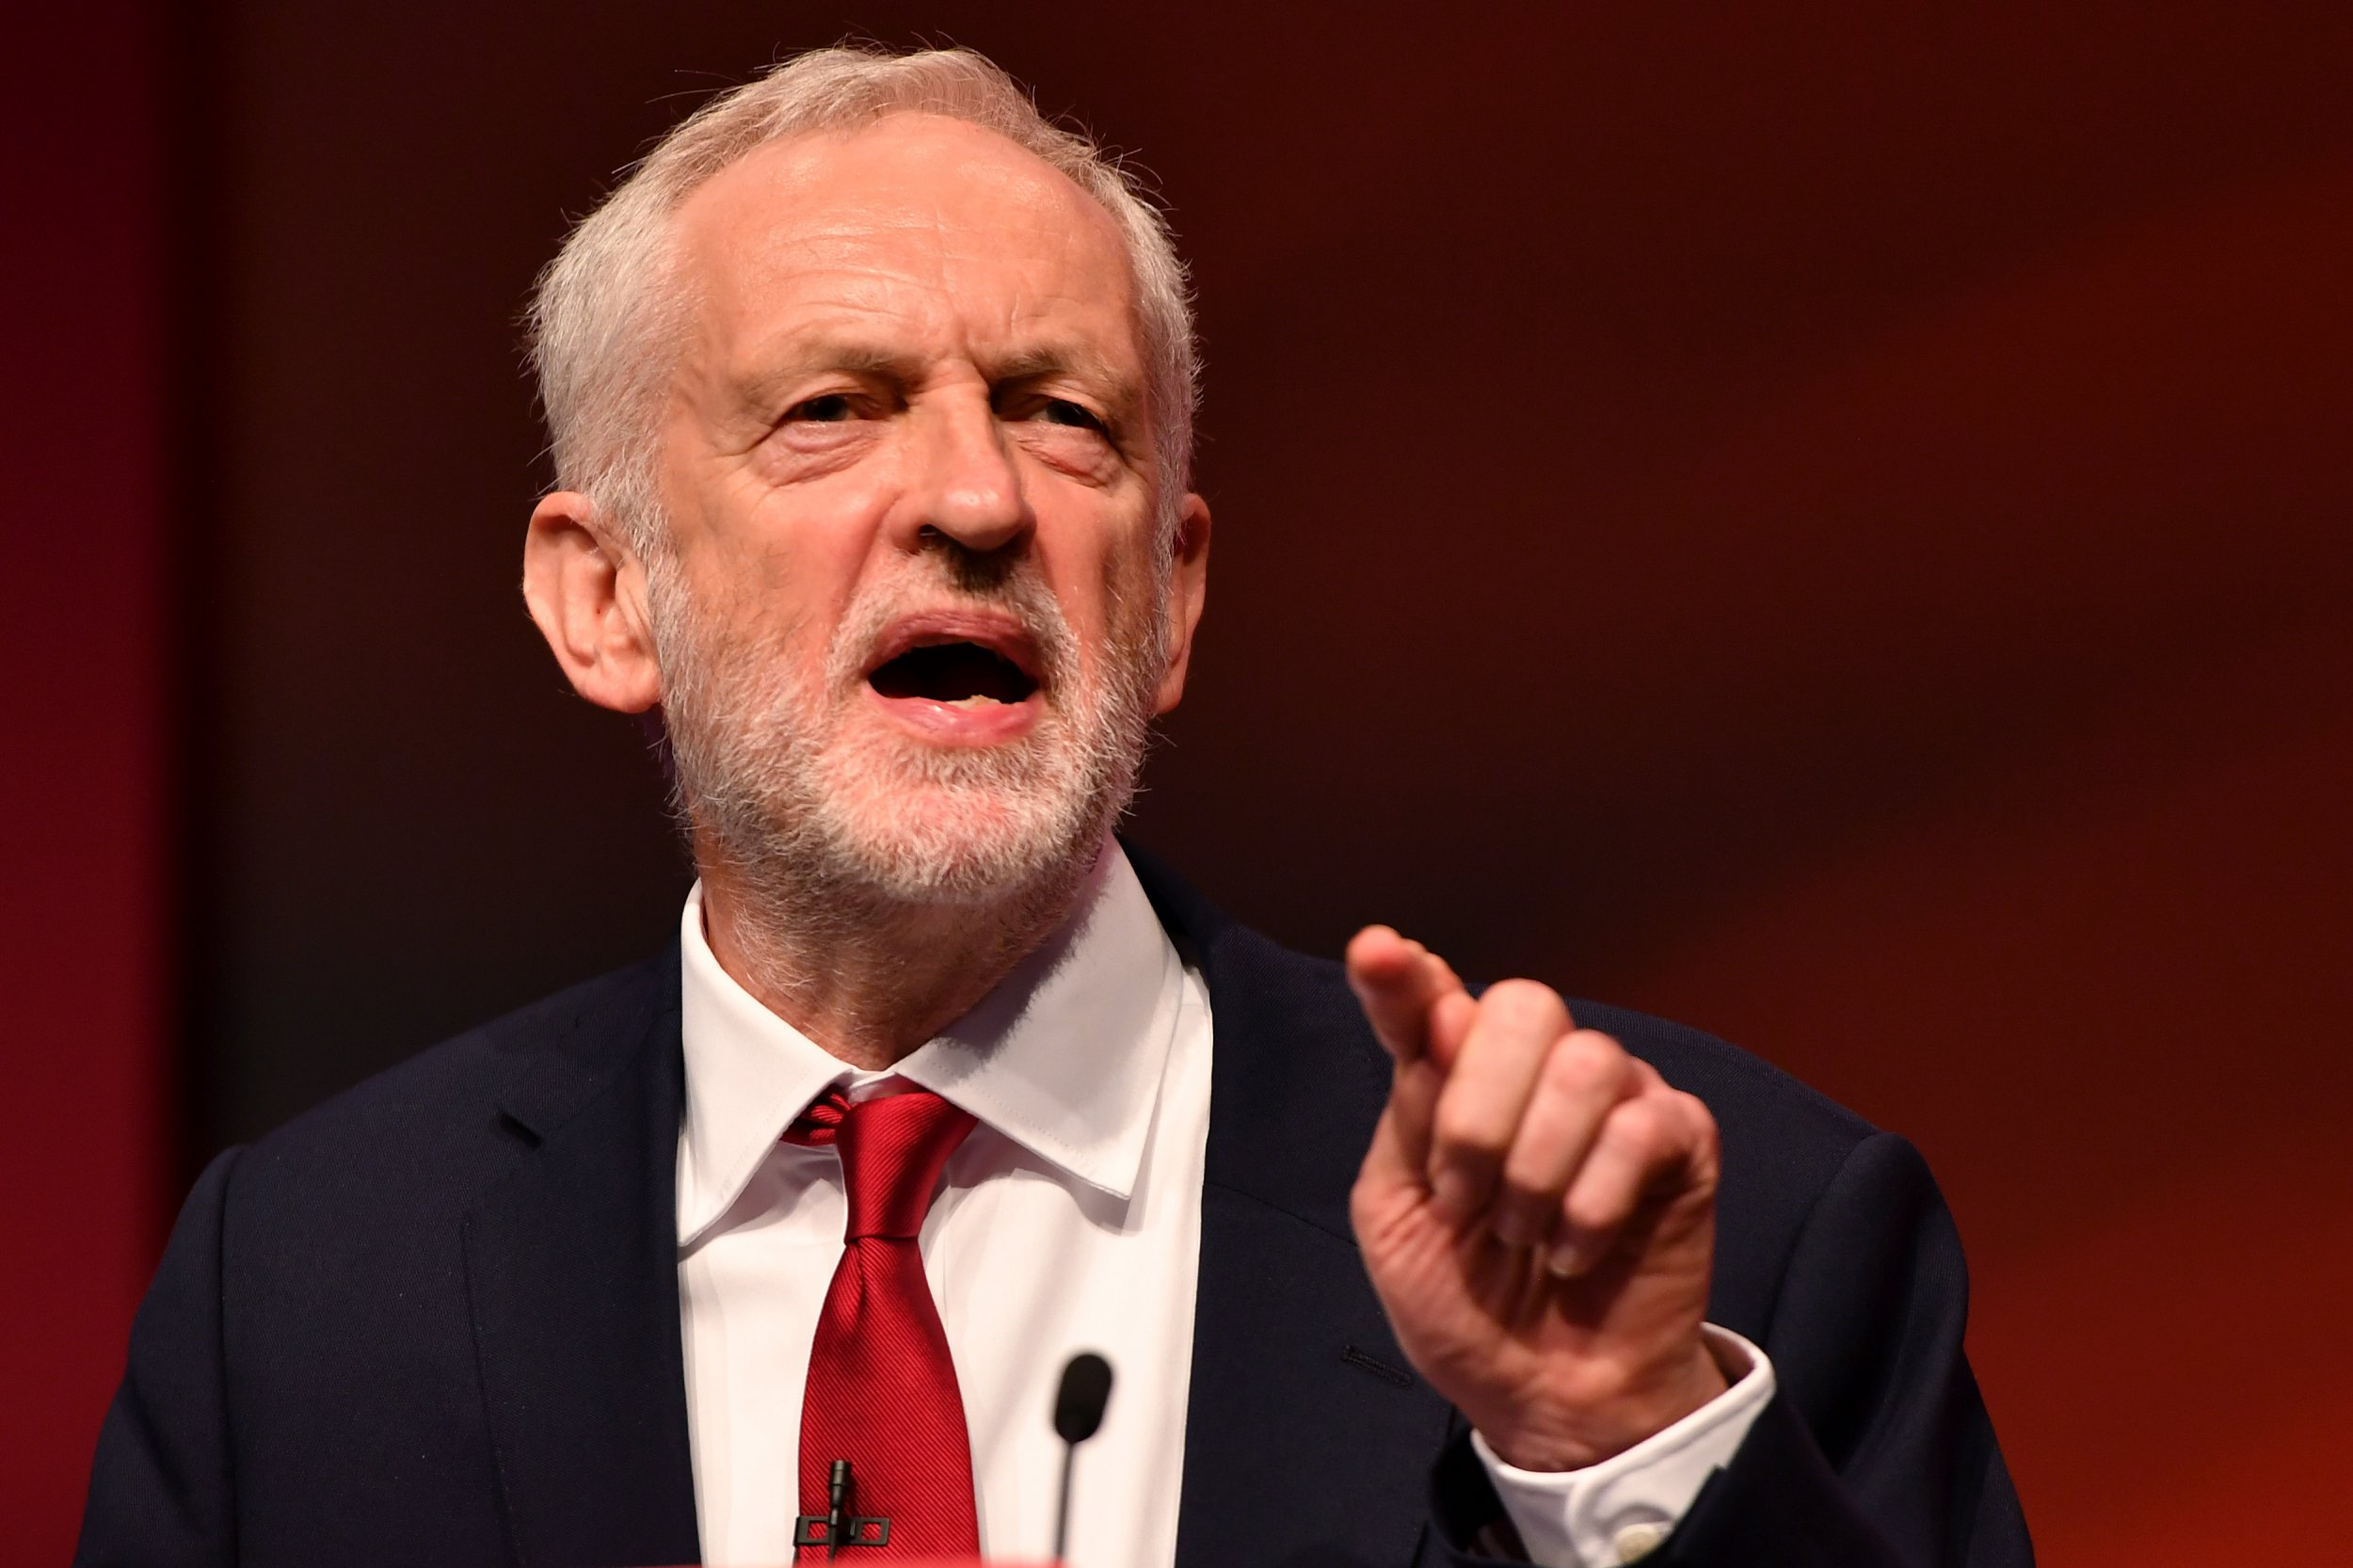 LIVERPOOL, ENGLAND - SEPTEMBER 26: Labour Party leader Jeremy Corbyn delivers the keynote speech during the Labour Party annual conference on September 26, 2018 in Liverpool, England. The four-day annual Labour Party Conference takes place at the Arena and Convention Centre in Liverpool and is expected to attract thousands of delegates and features keynote speeches from party politicians and over 450 fringe events (Photo by Anthony Devlin/Getty Images)